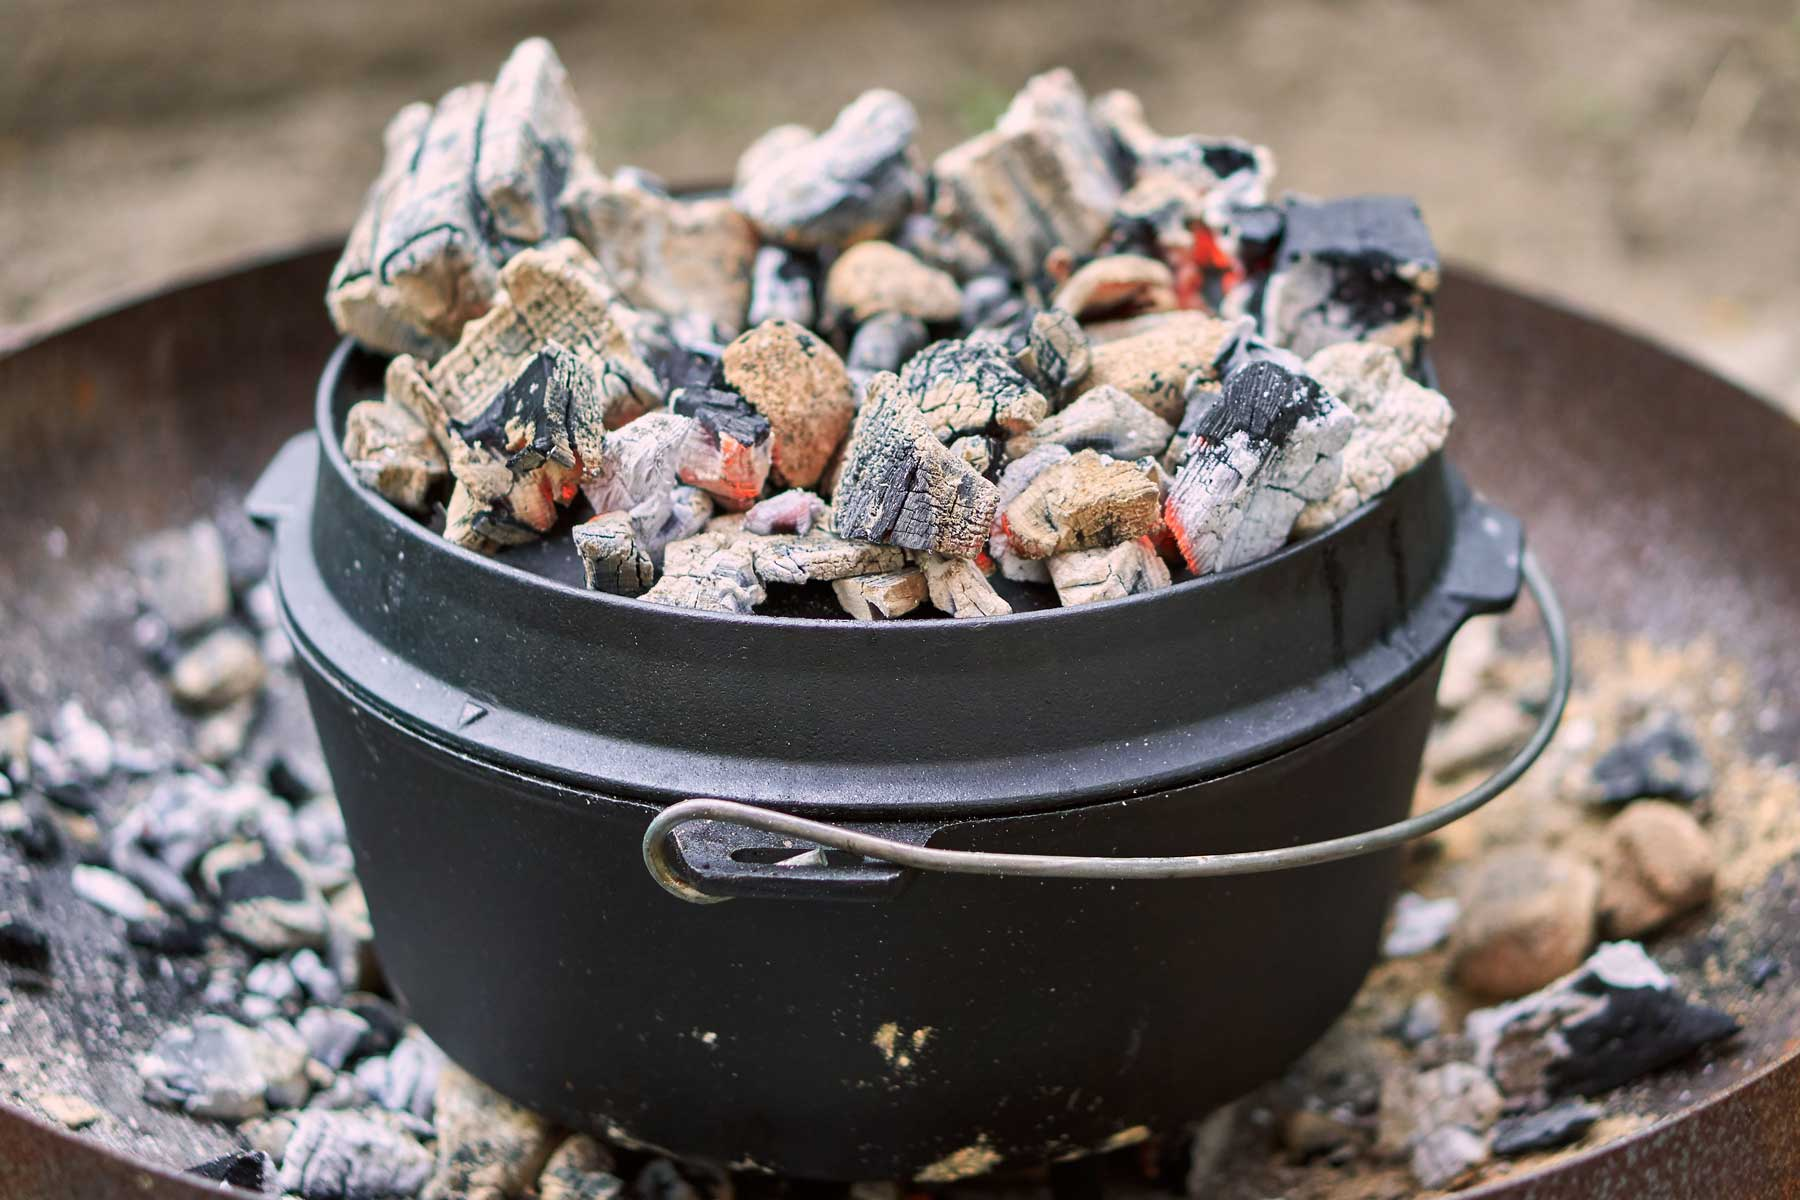 Dutch oven with coals on lid.